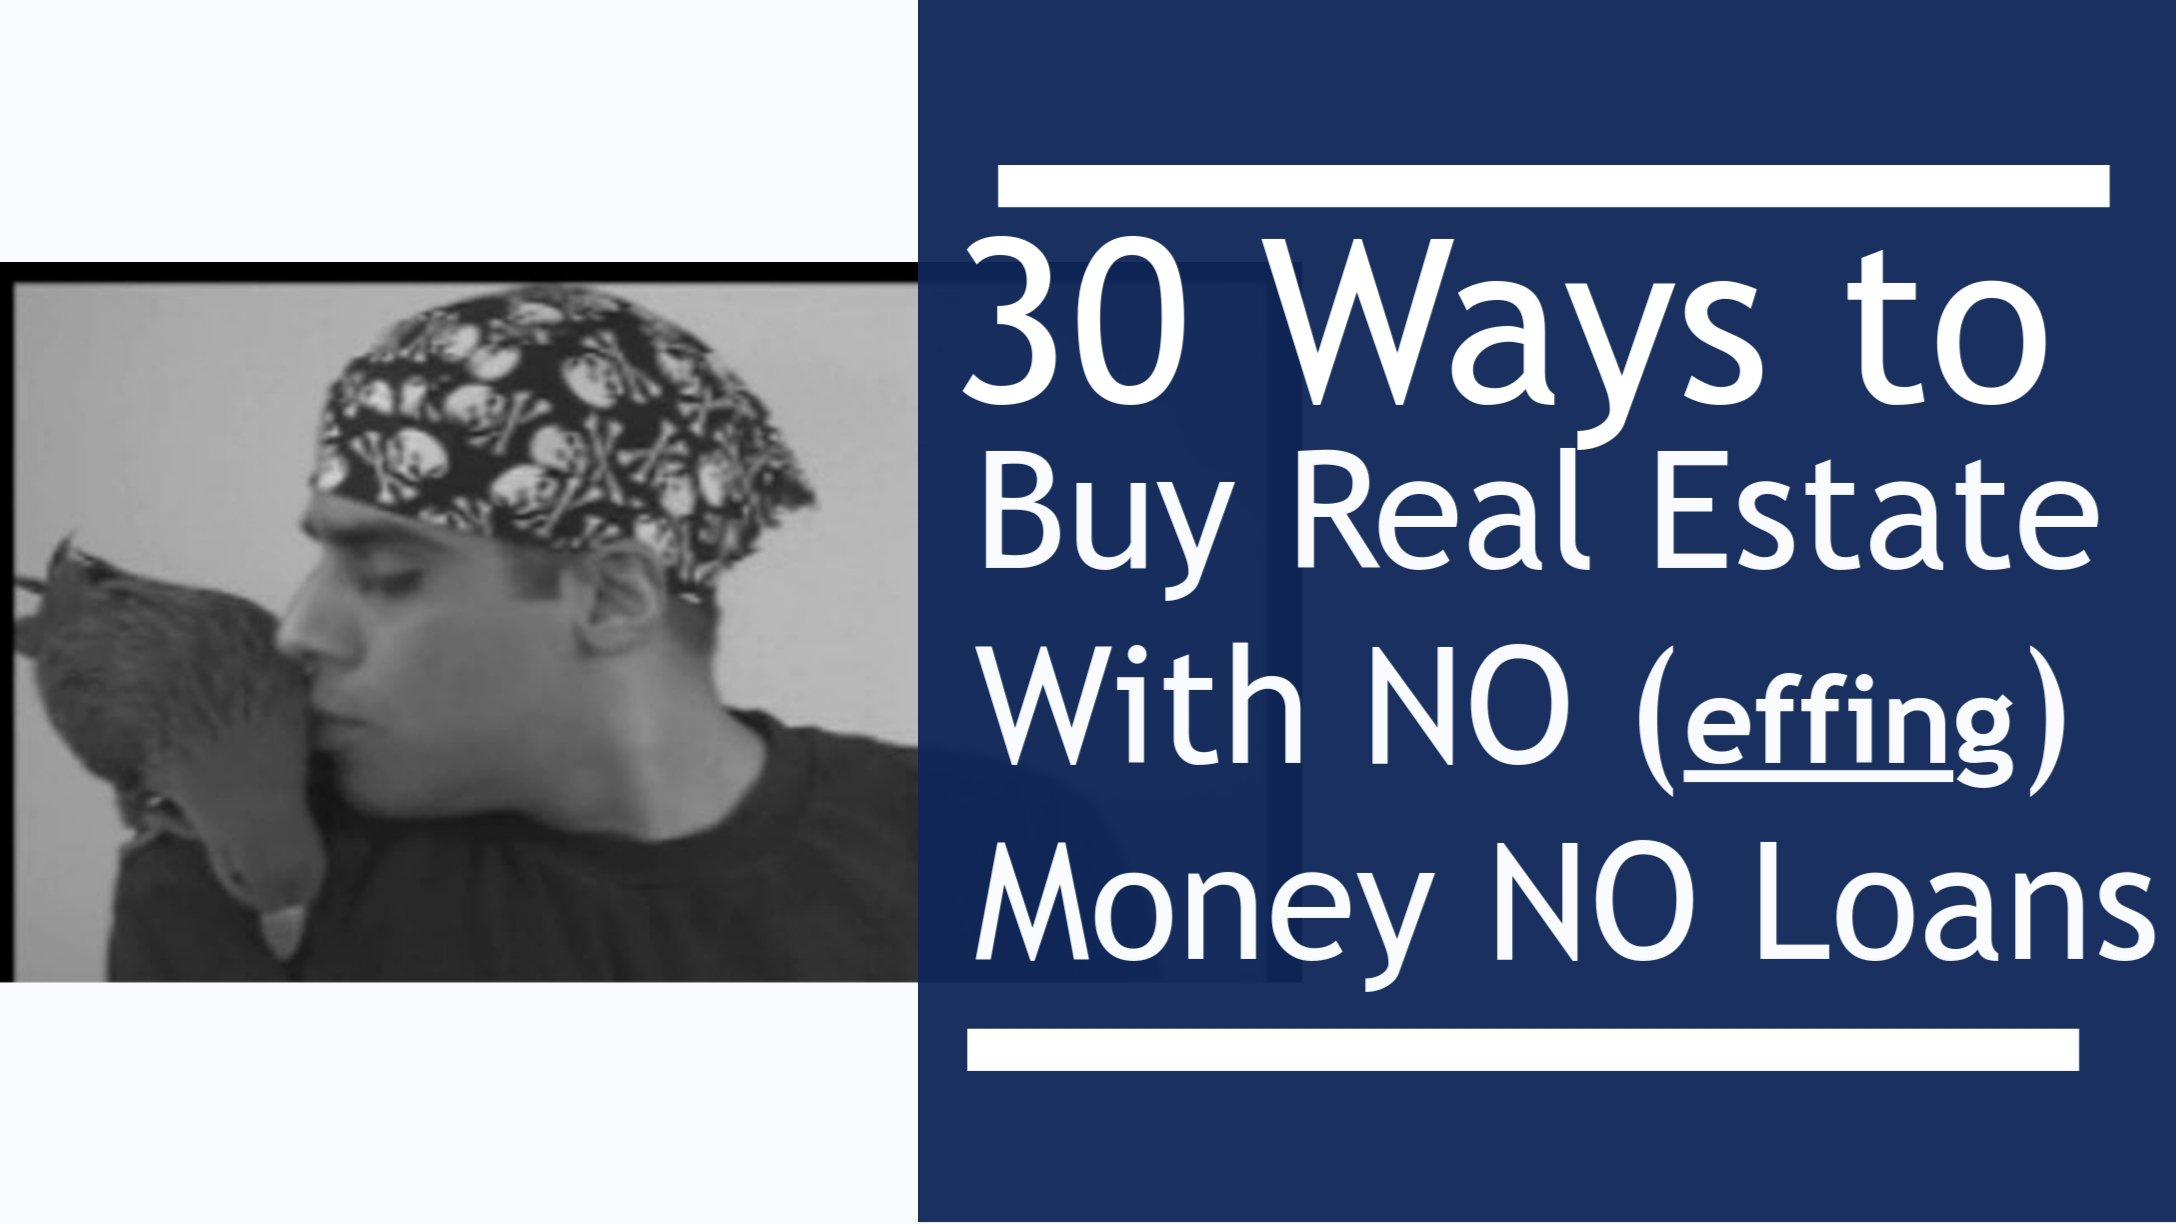 30 Ways to Buy Real Estate Zero Down With No (effing) Money, Zero Down, With No Loans, No Credit and No Banks. (video)